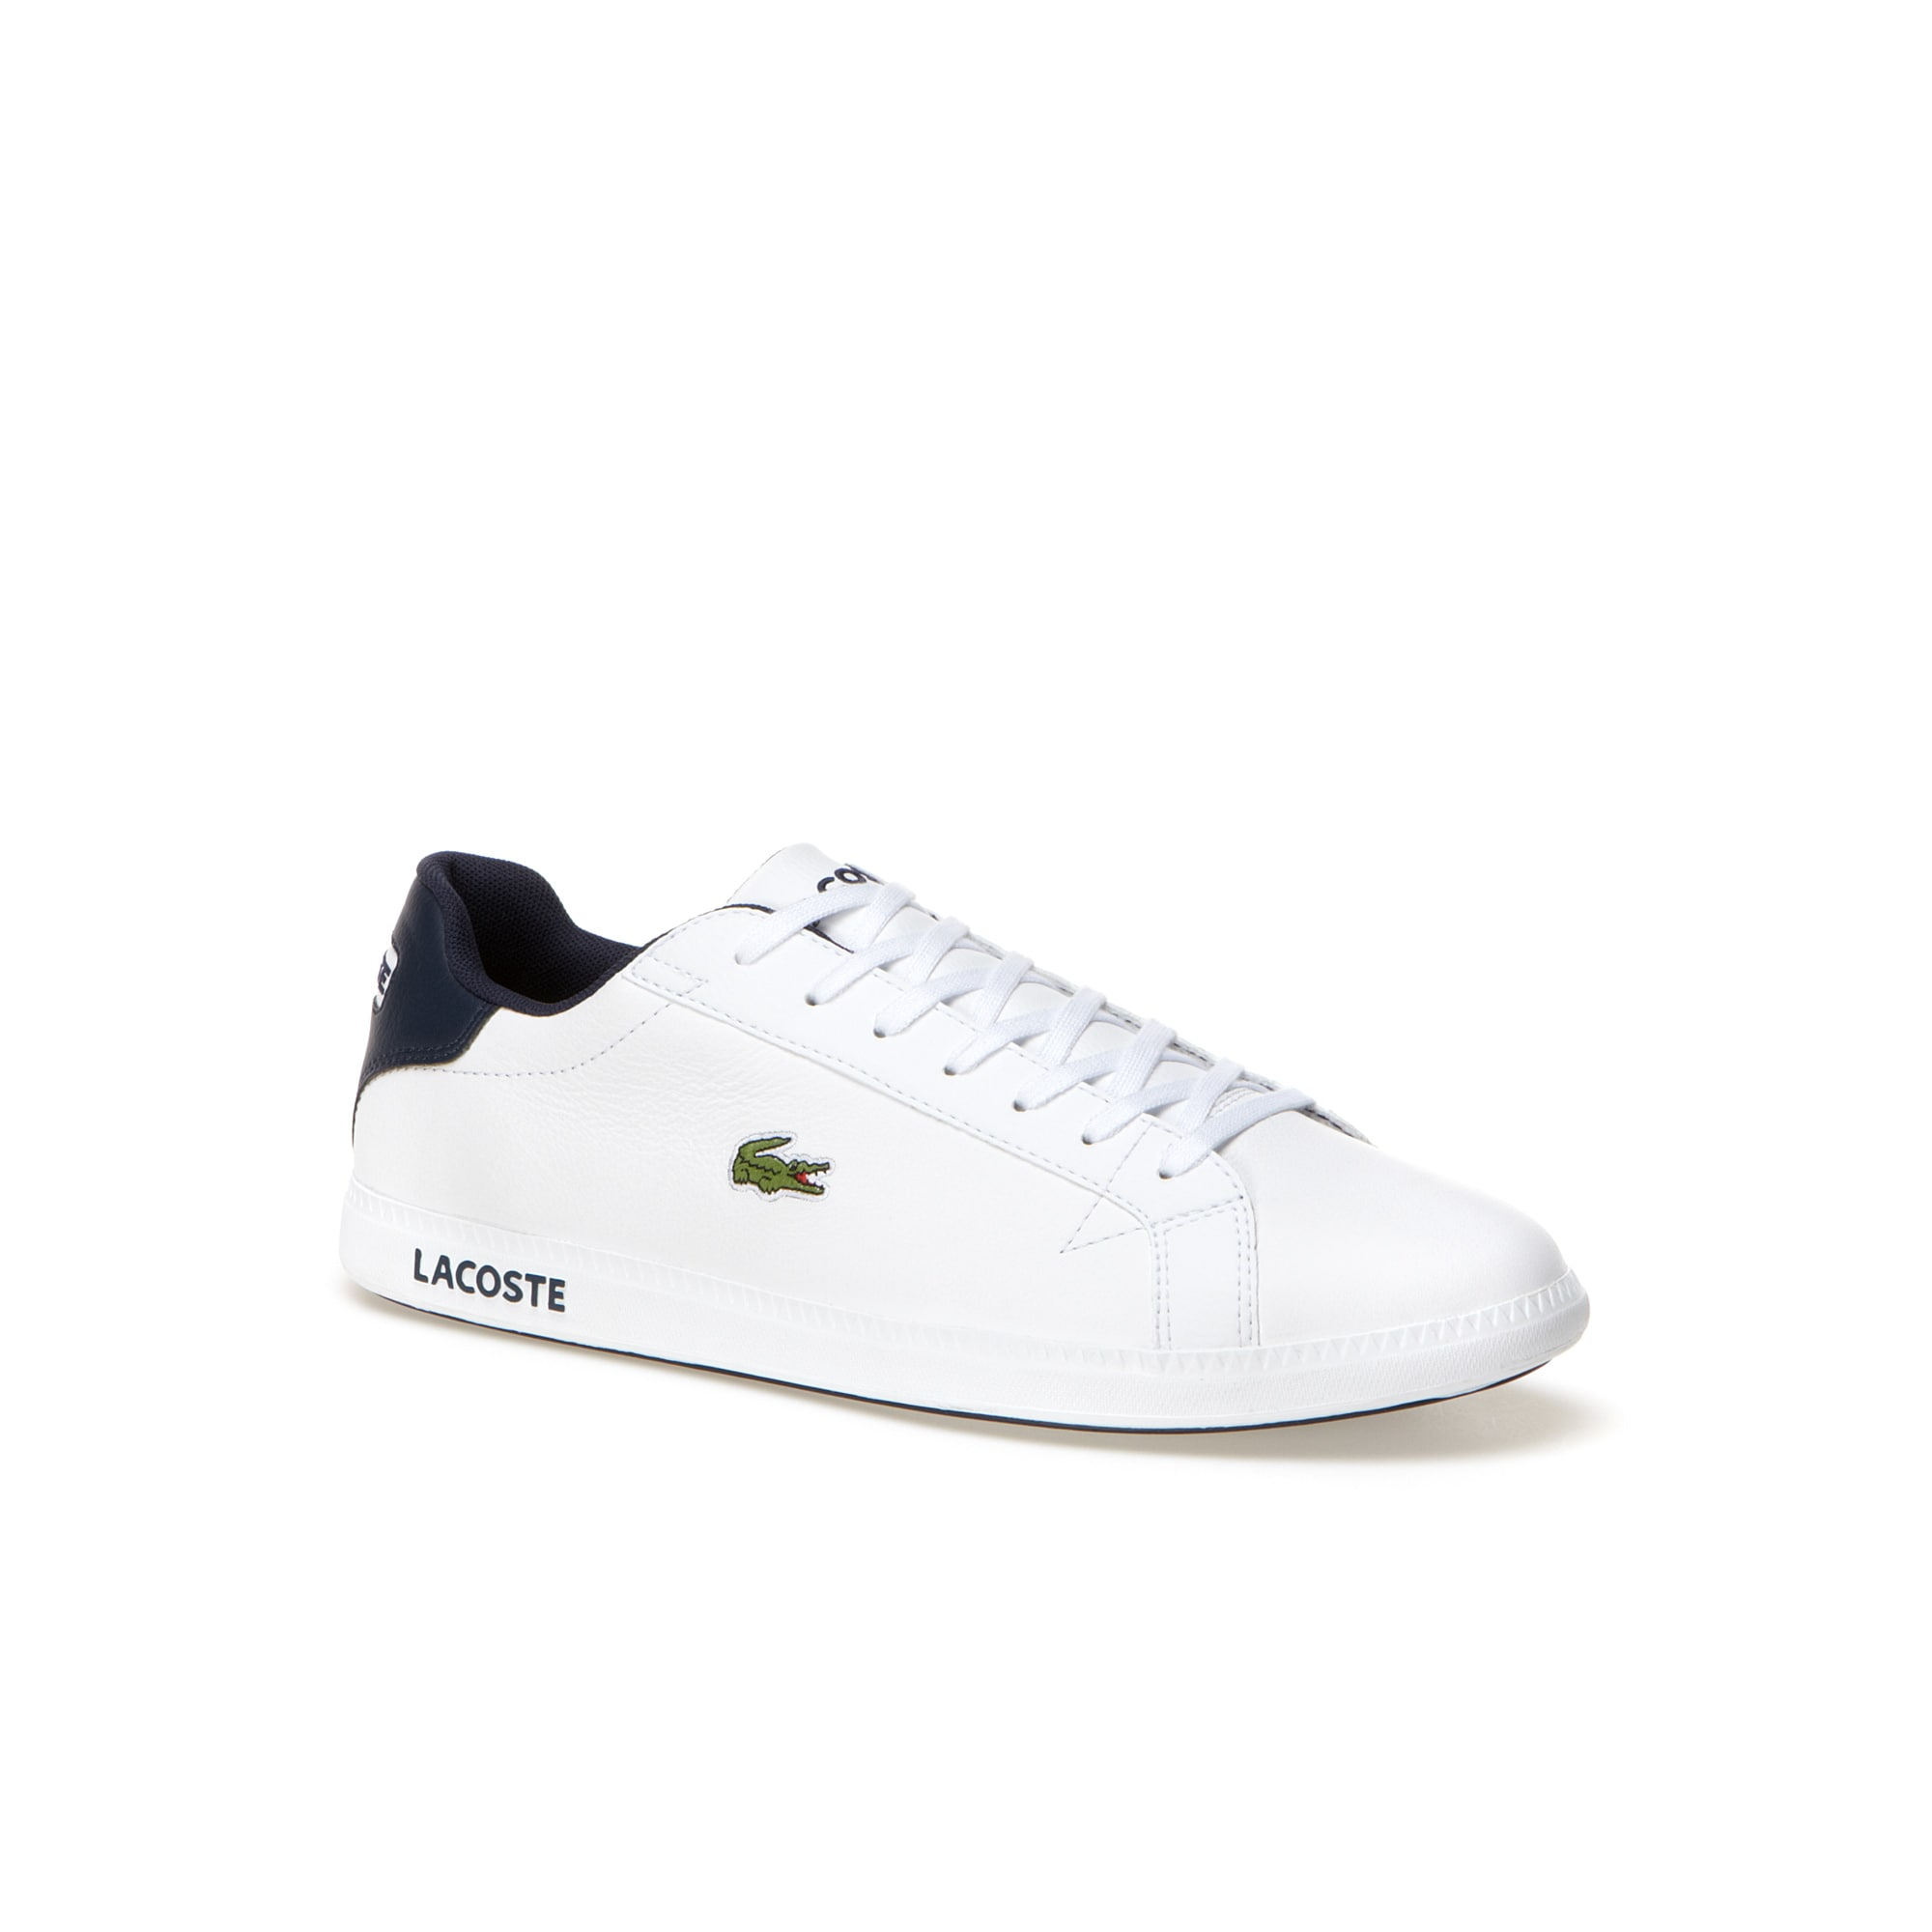 lacoste trainers ireland - 58% OFF